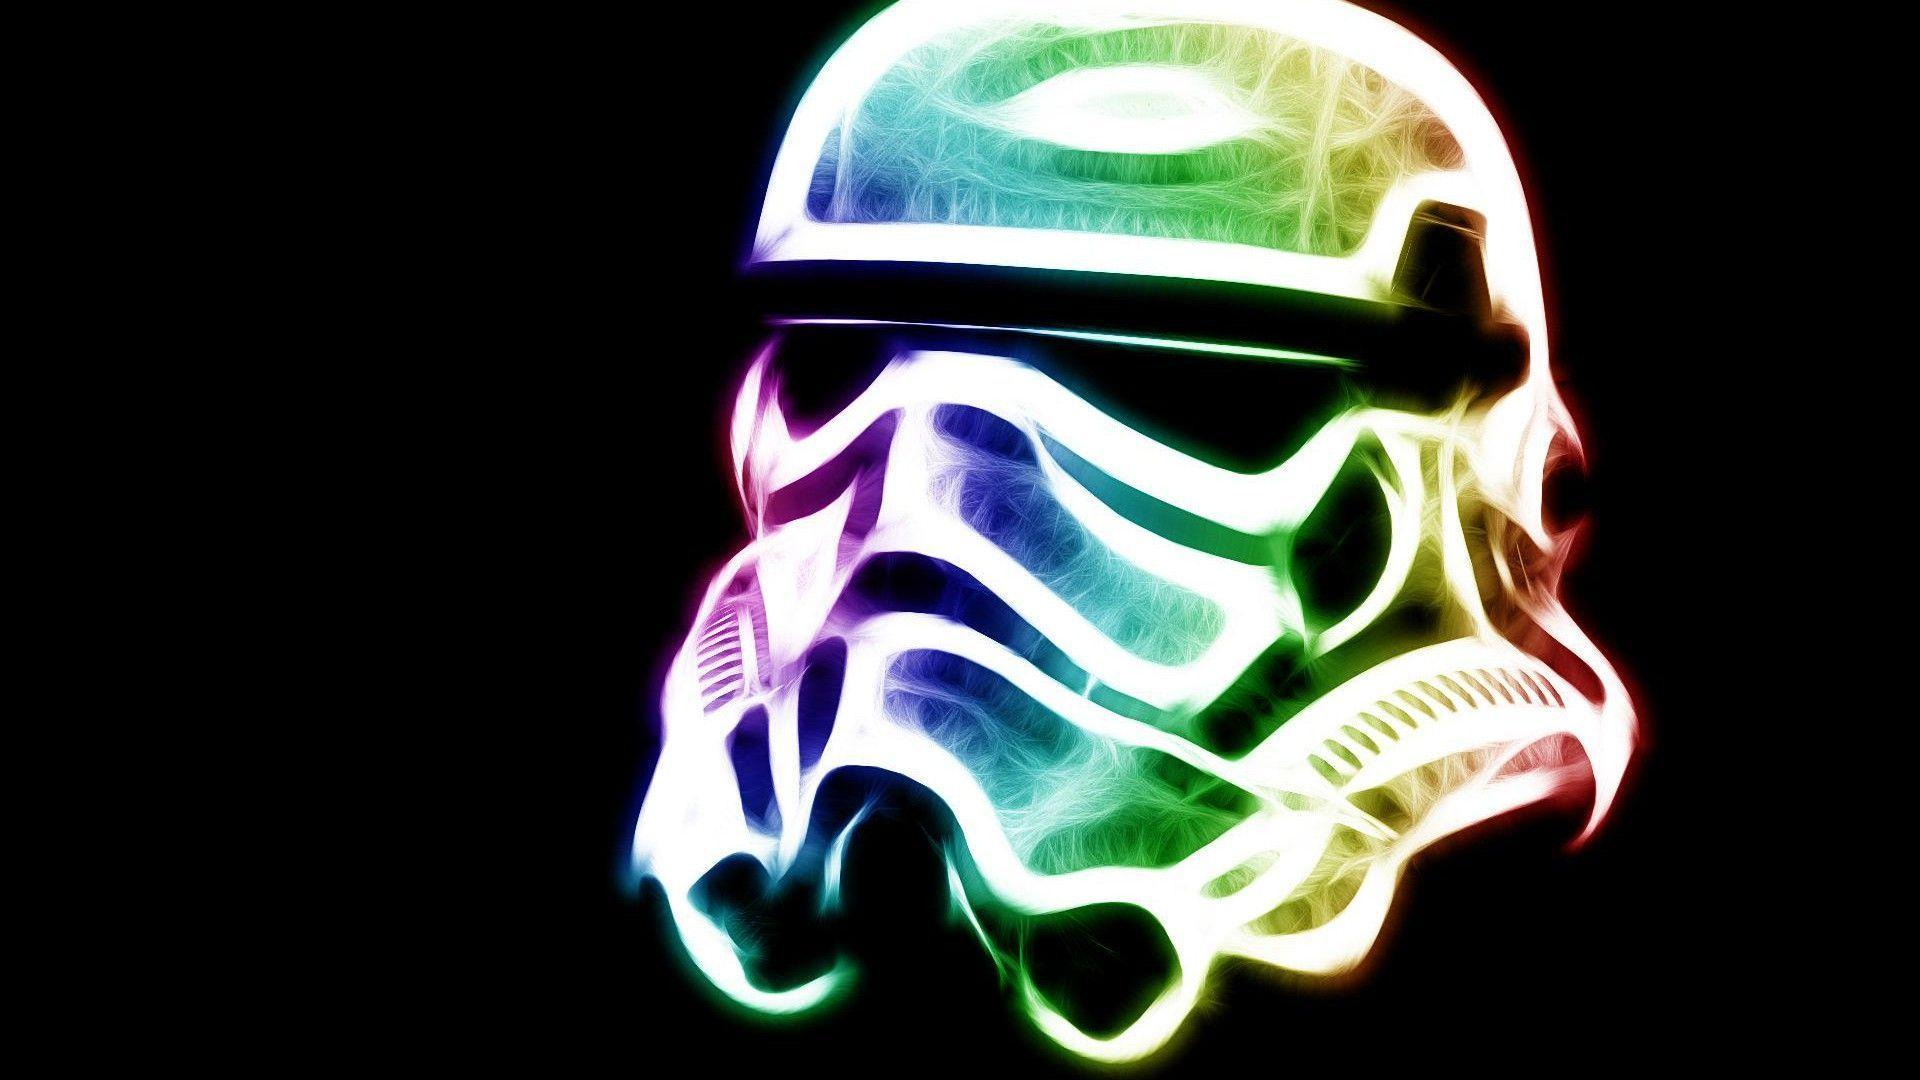 Star wars wallpapers 1080p wallpaper cave - Star wars cool backgrounds ...